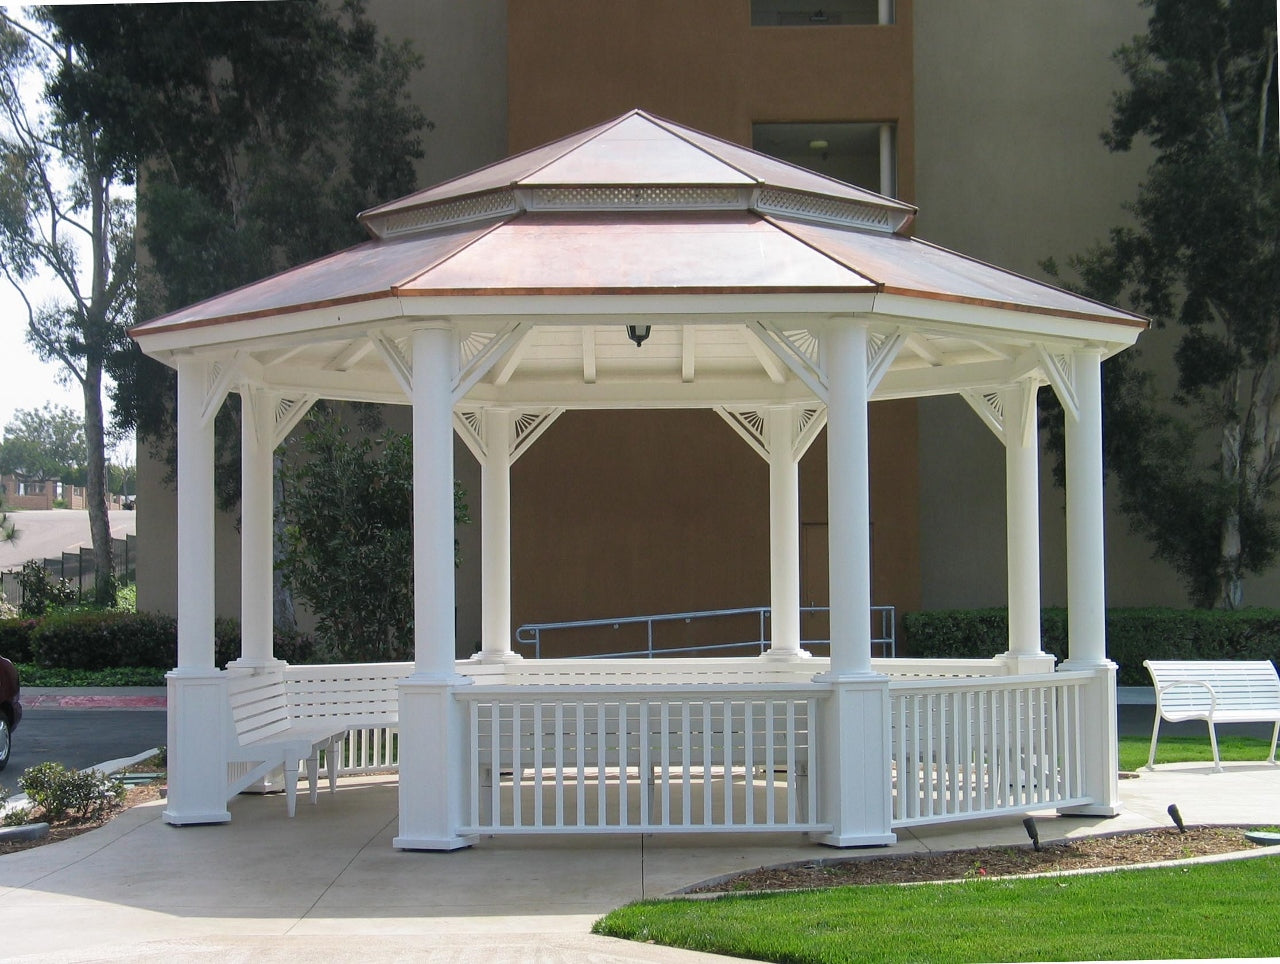 Octagon Gazebo With Copper Two Tiered Pagoda Roof